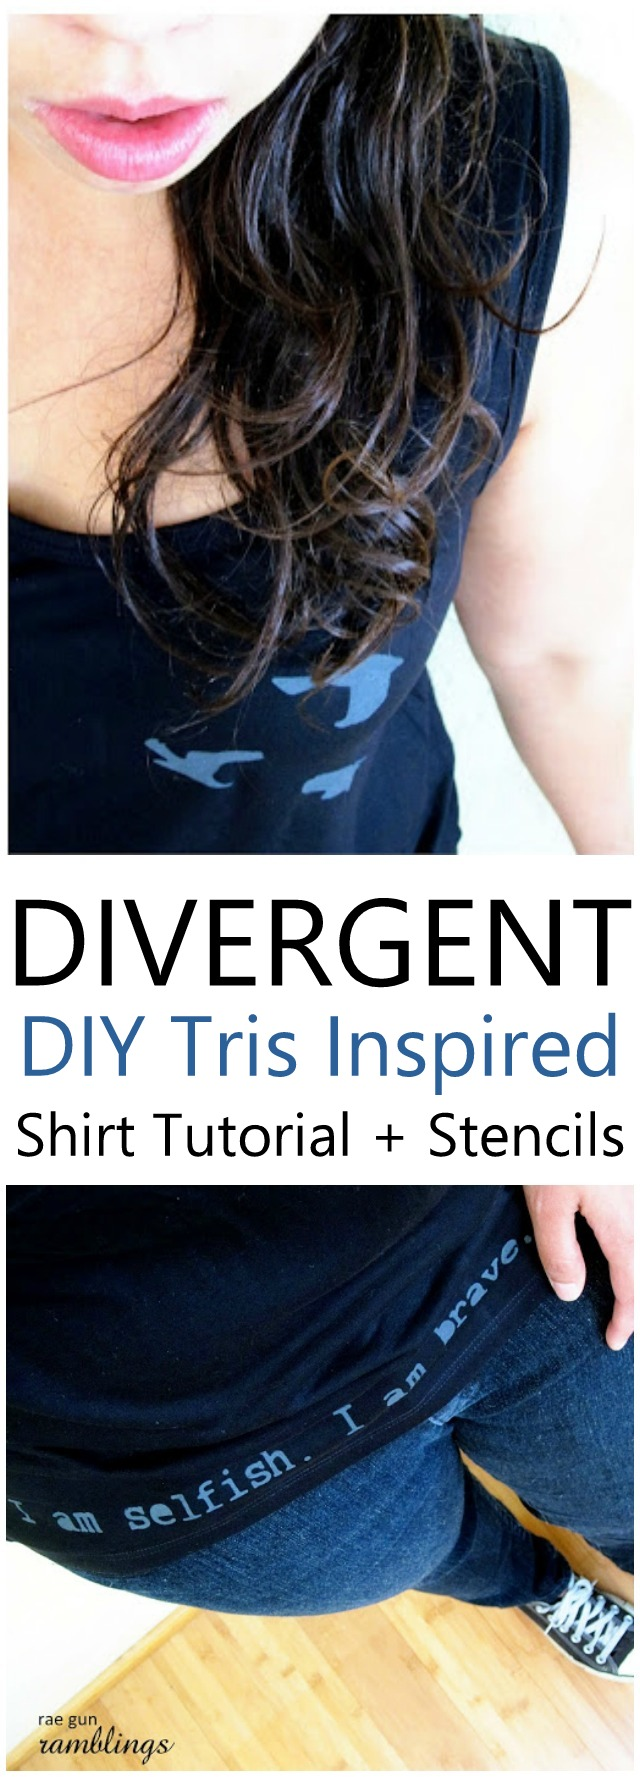 This Divergent tank is so awesome. Great DIY tutorial with stencils.